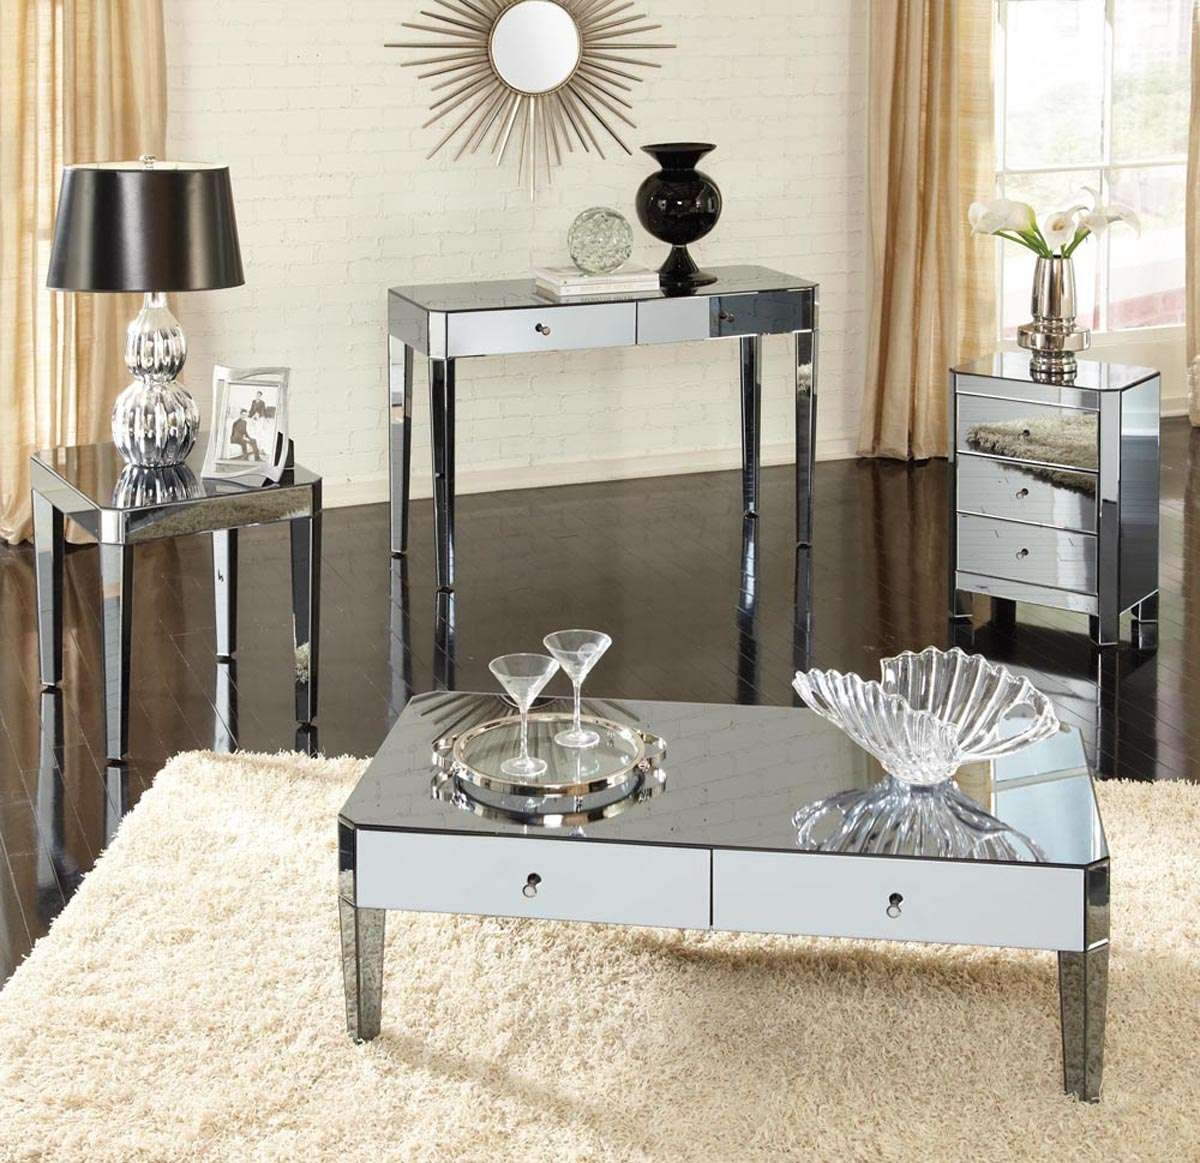 Fashionable Mirrored Coffee Tables With Coffee Table, Mirrored Coffee Table Set Mirrored Coffee Table Tray (View 4 of 20)